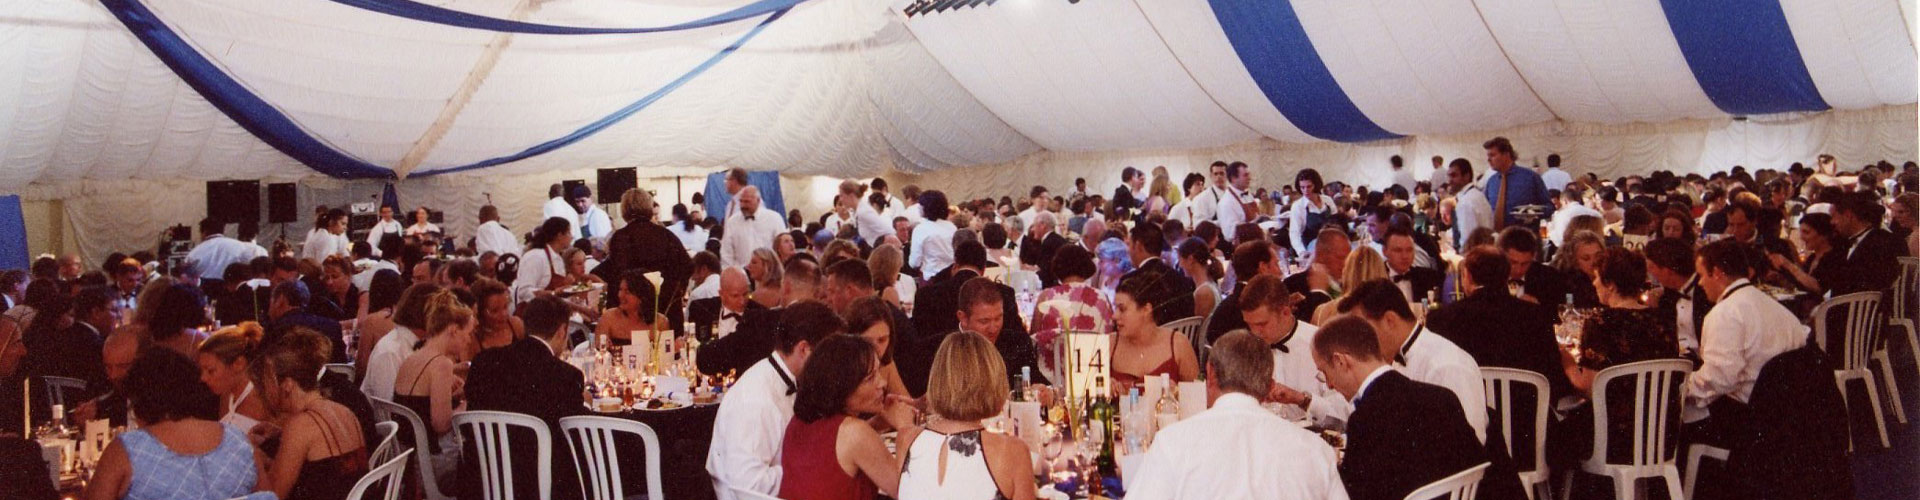 gloucestershire in-house marquee from elegant marquees nailsworth